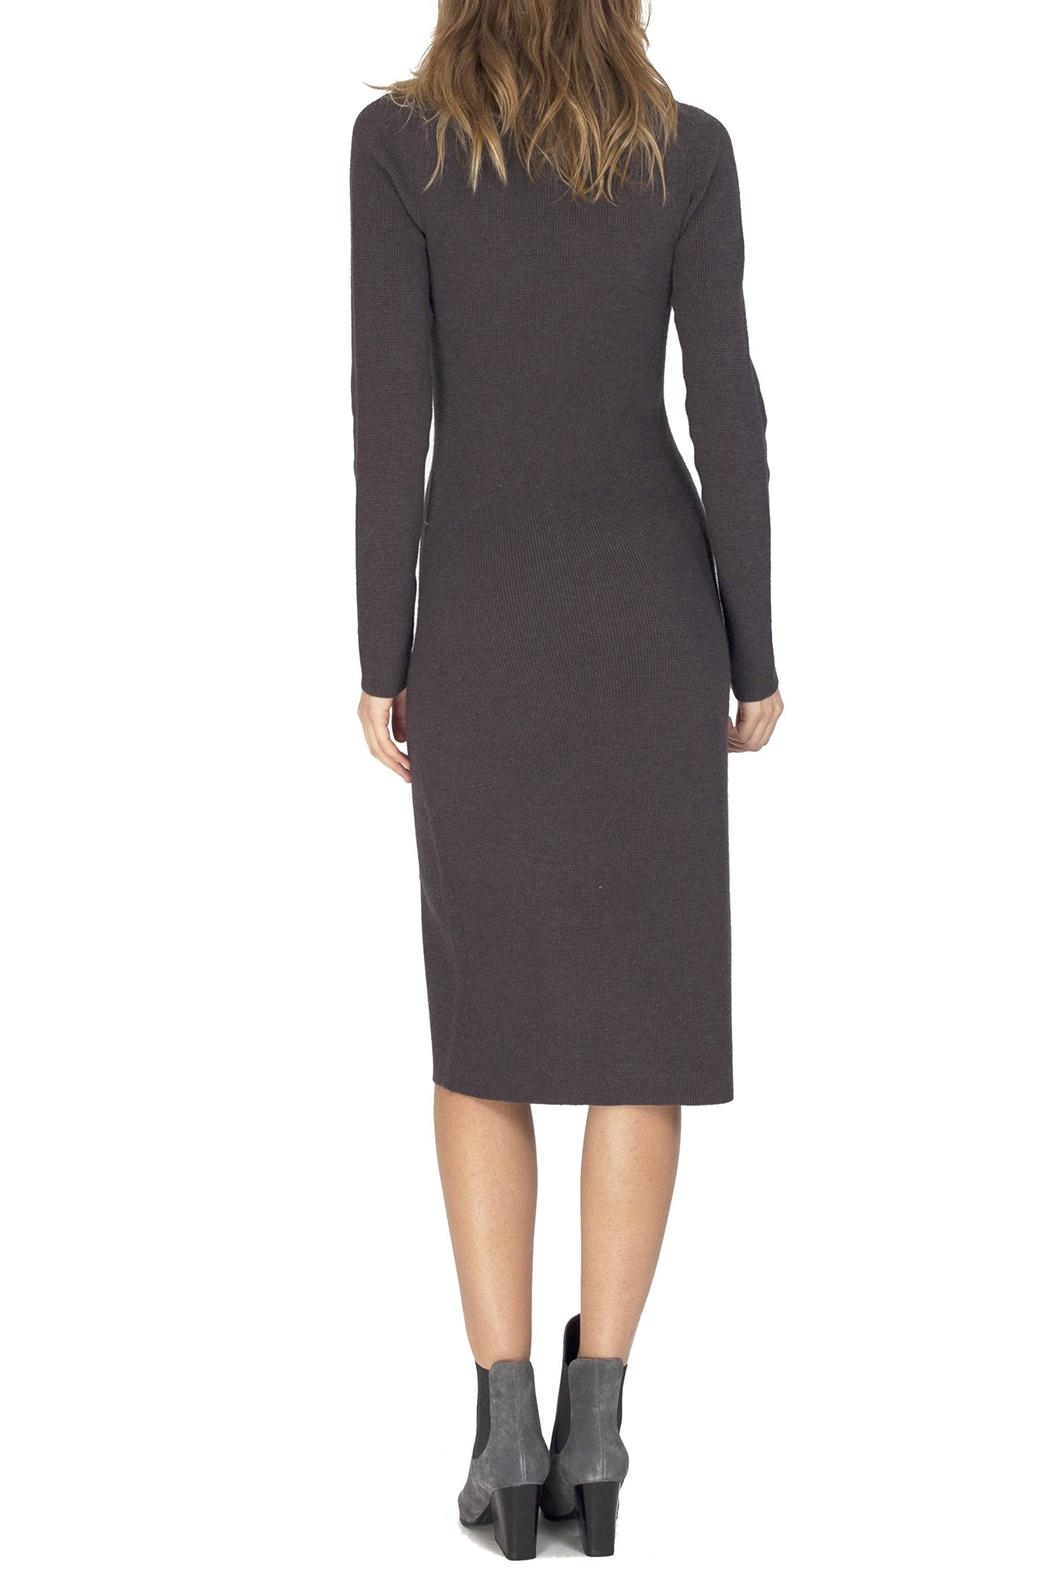 Gentle Fawn Quinn Sweater Dress - Side Cropped Image